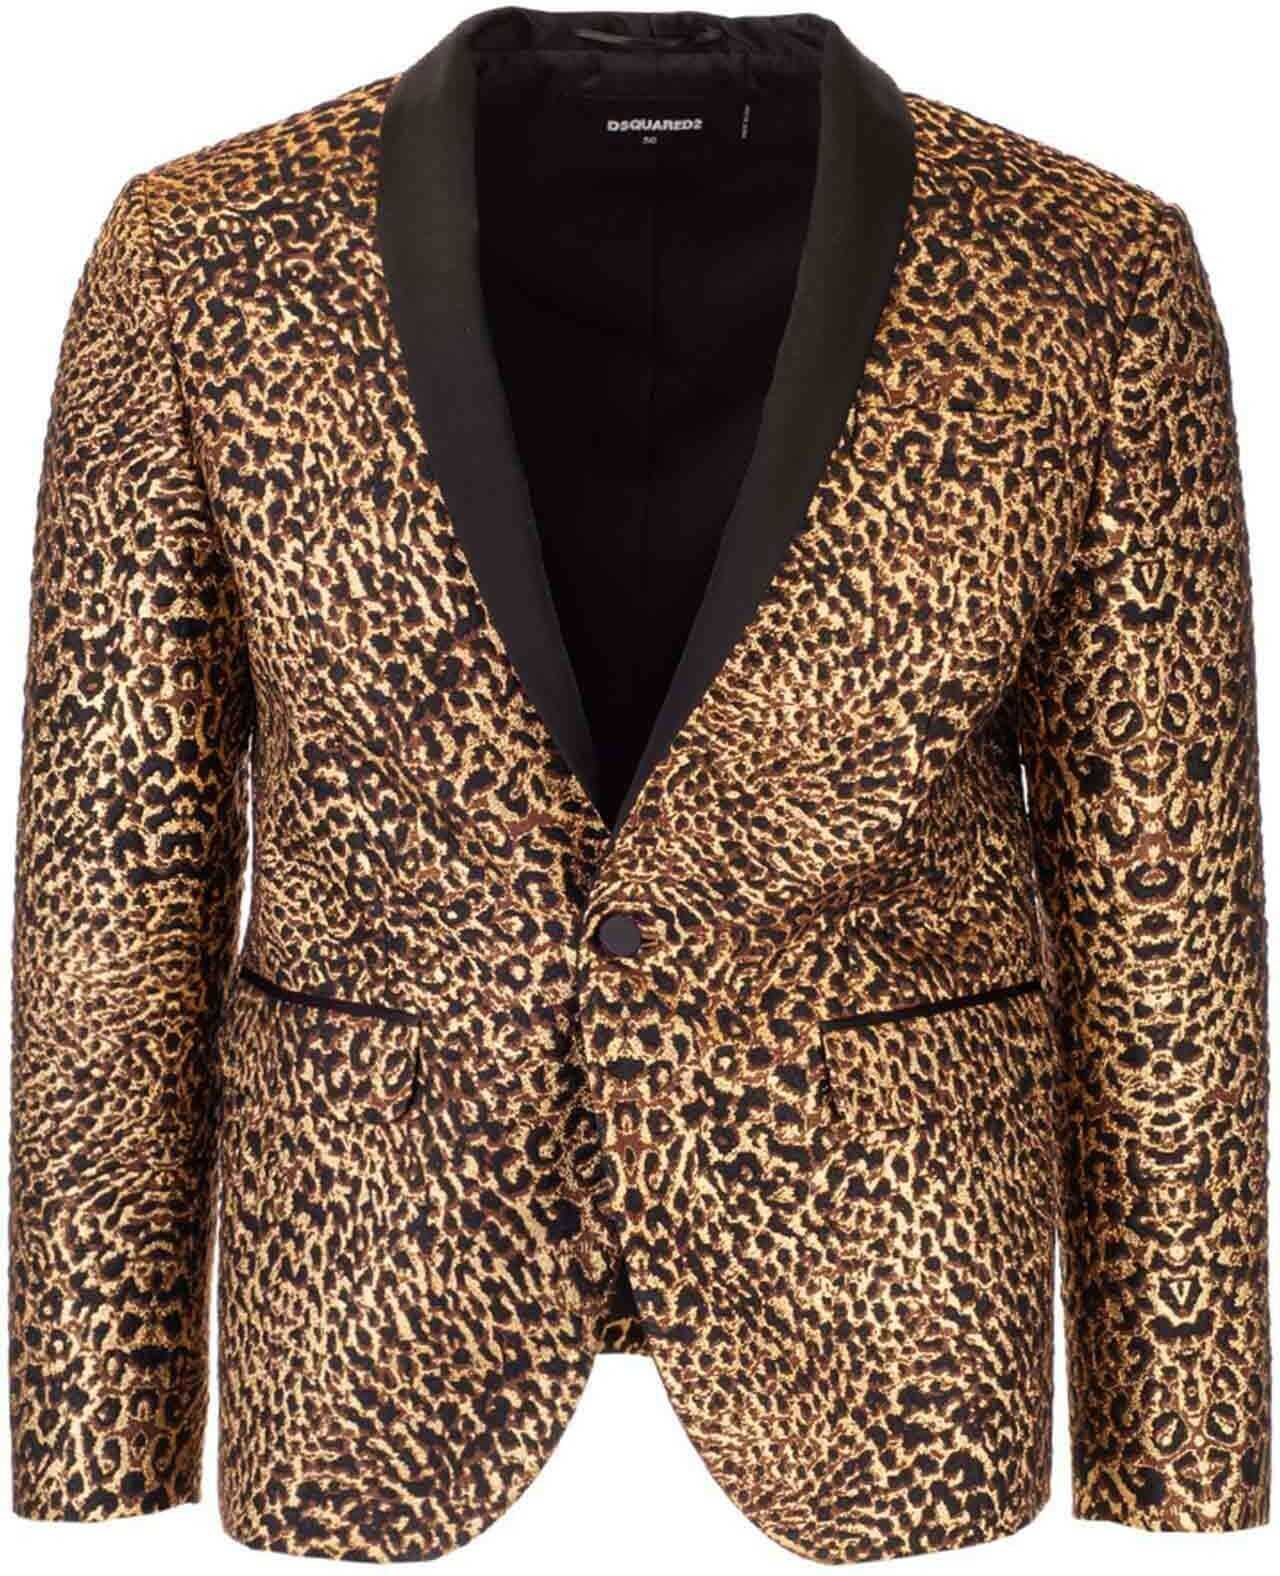 DSQUARED2 Tokyo Spotted Lamé Blazer In Black And Gold Gold imagine